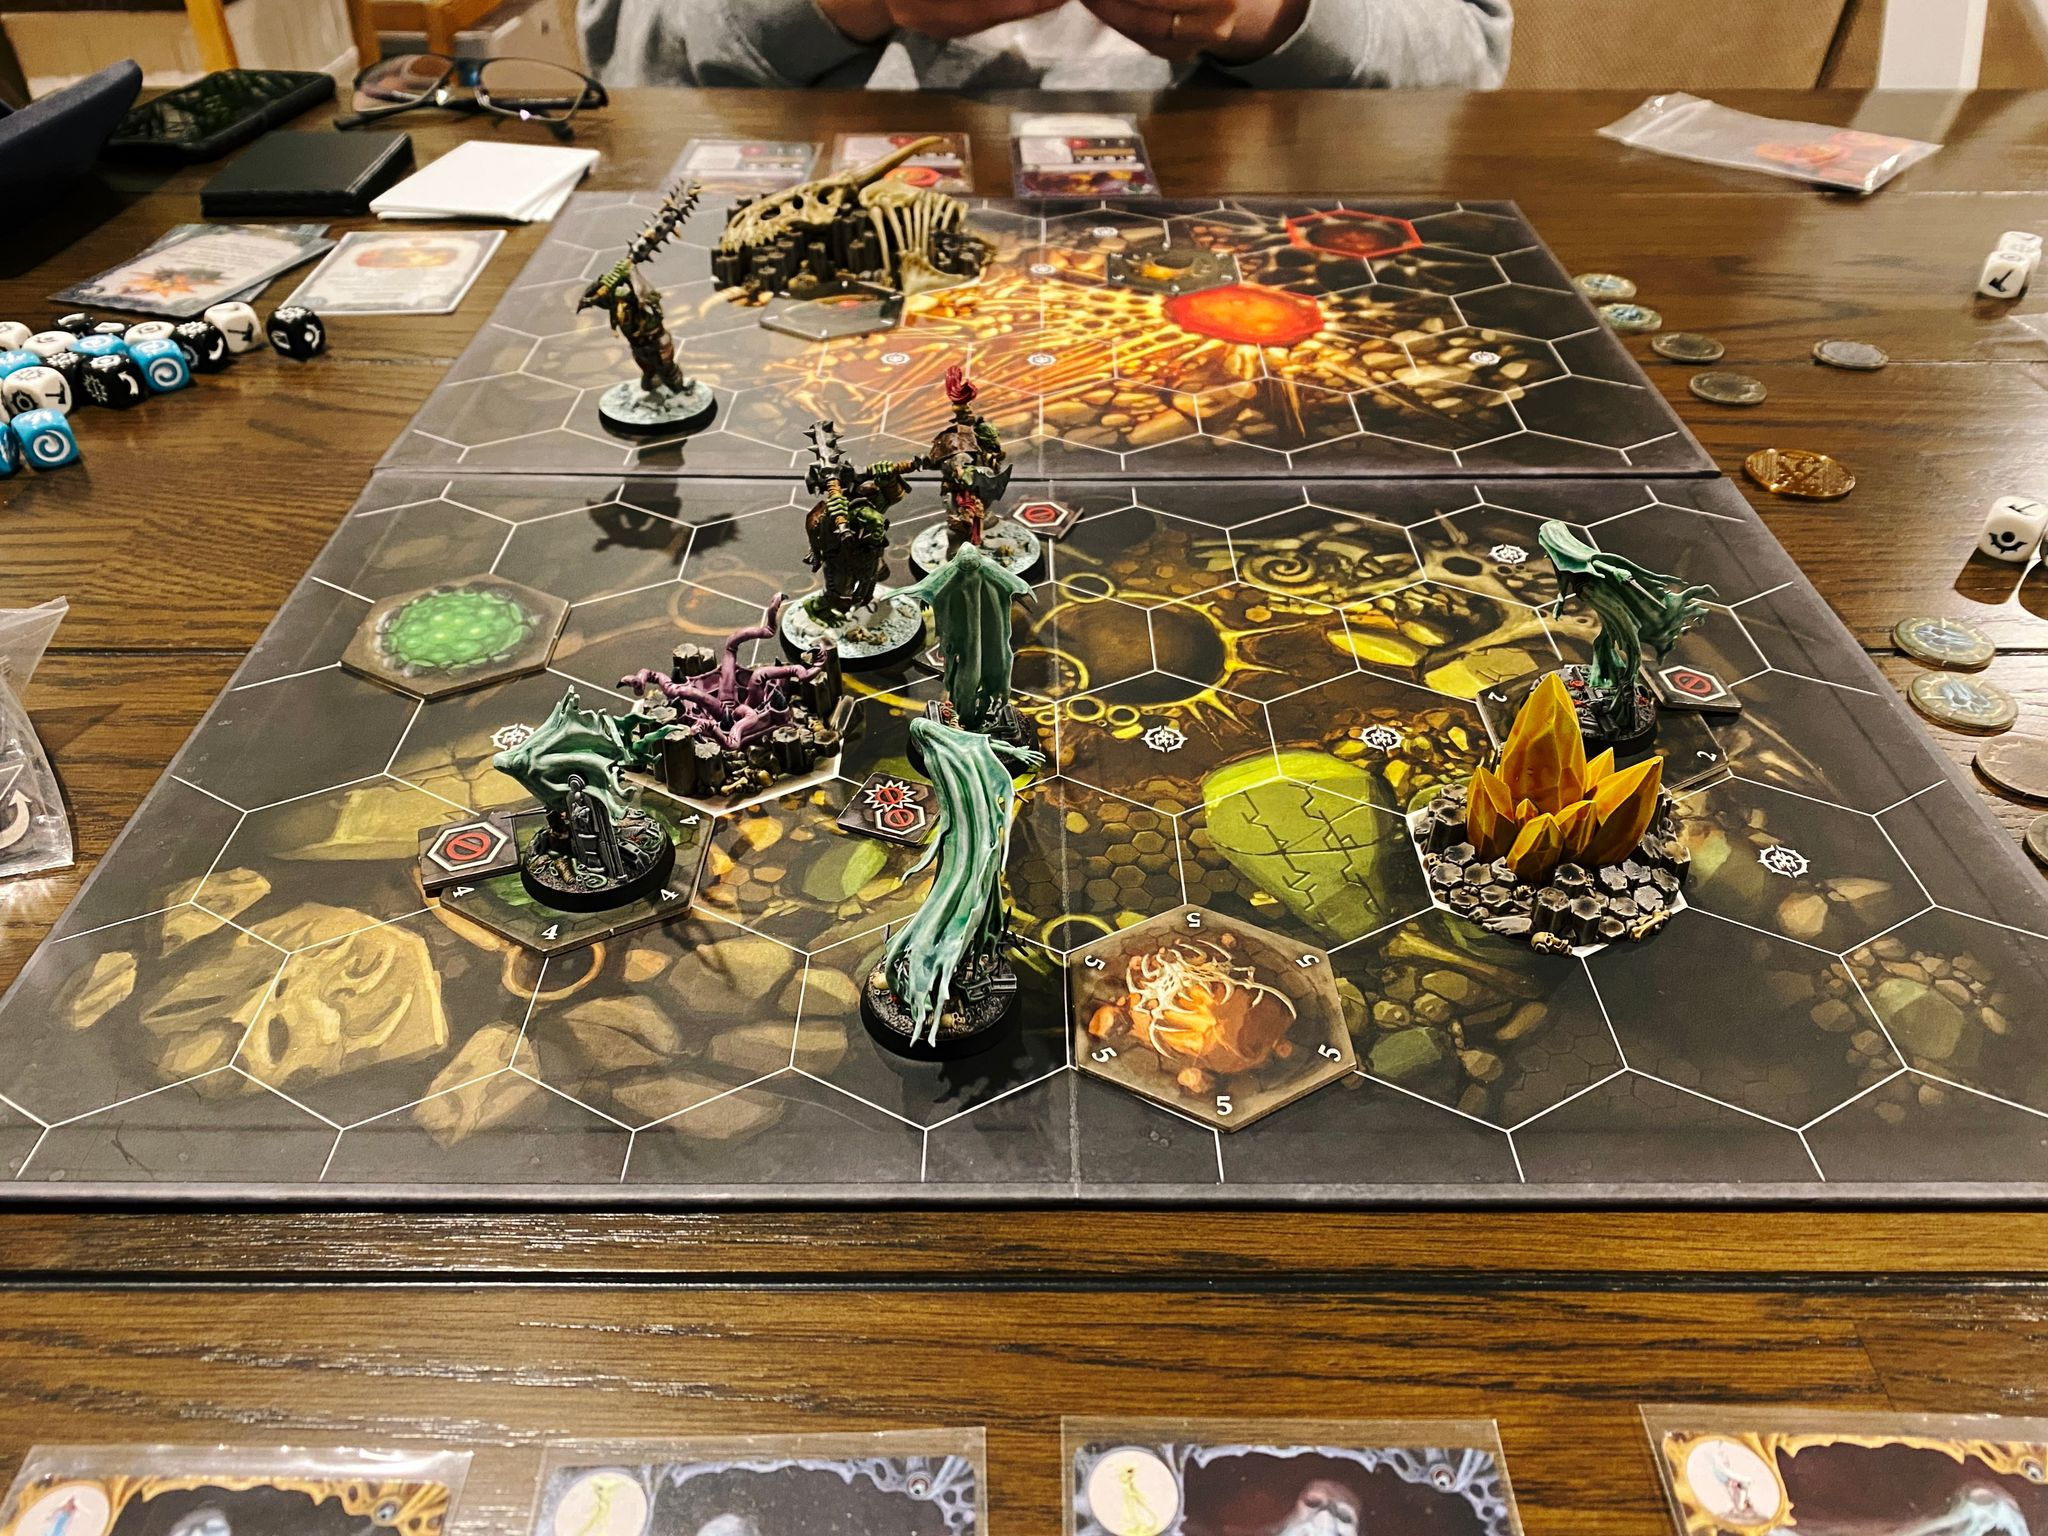 A photo of a Warhammer Underworlds board, with tiled hexes on it. Lady Harrow's Mournflight are at the front, consisting of four flowing ghostly-looking spirits. Facing them are Morgok's Krushas, three heavily armed and armoured orruks (orks).